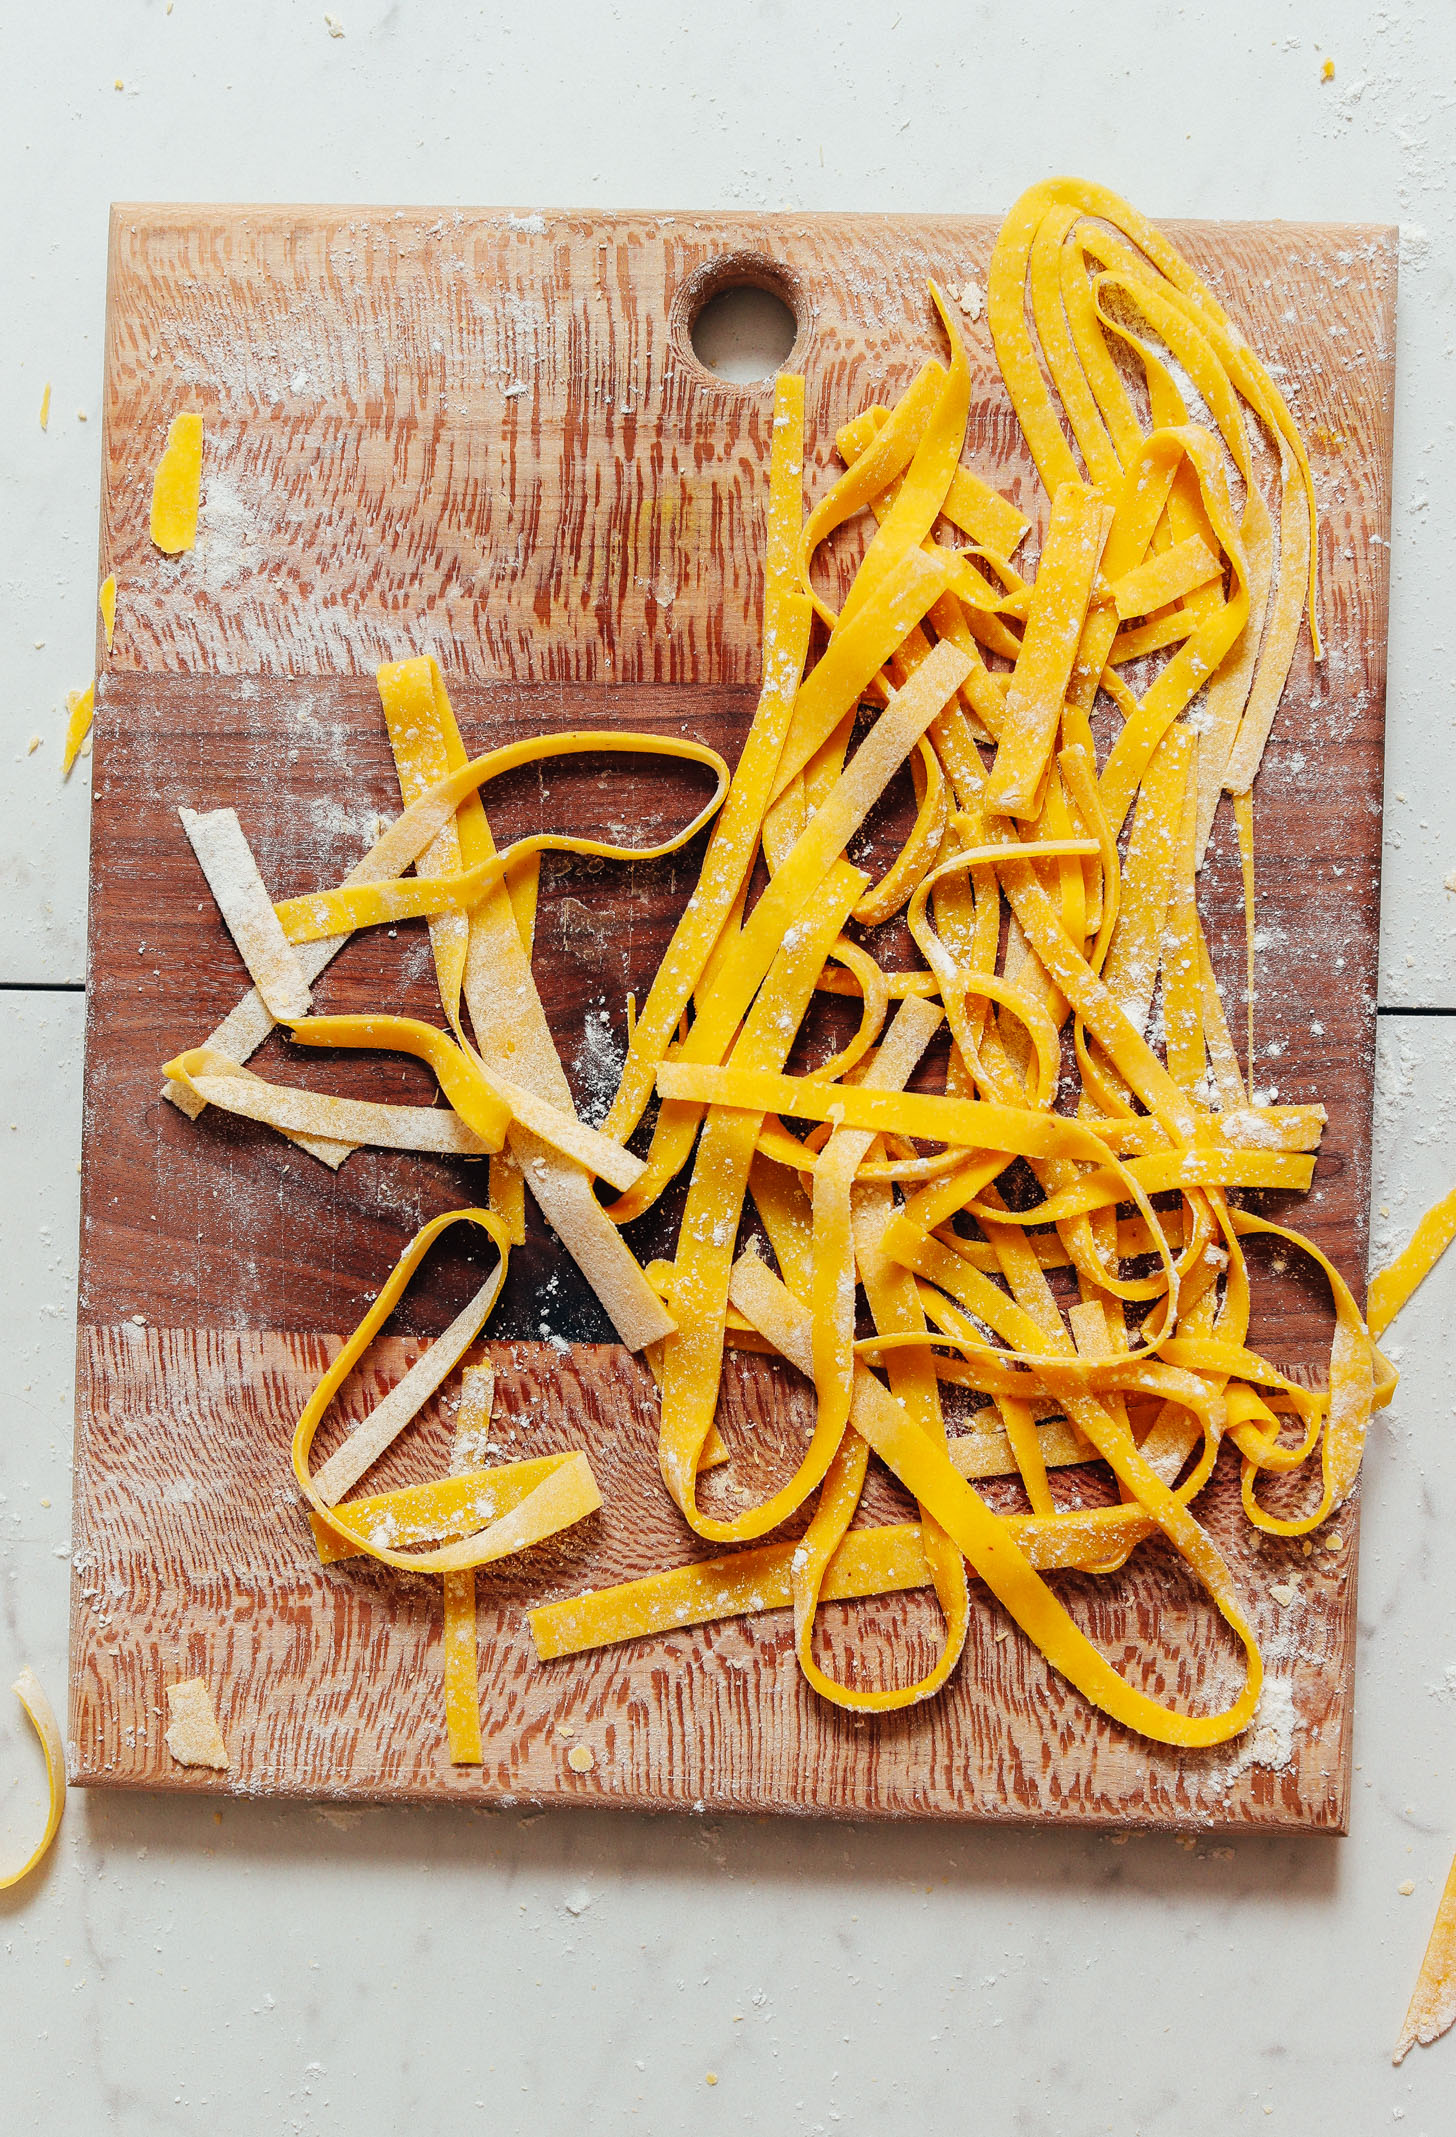 Cutting board of homemade Gluten Free Egg Noodles before cooking